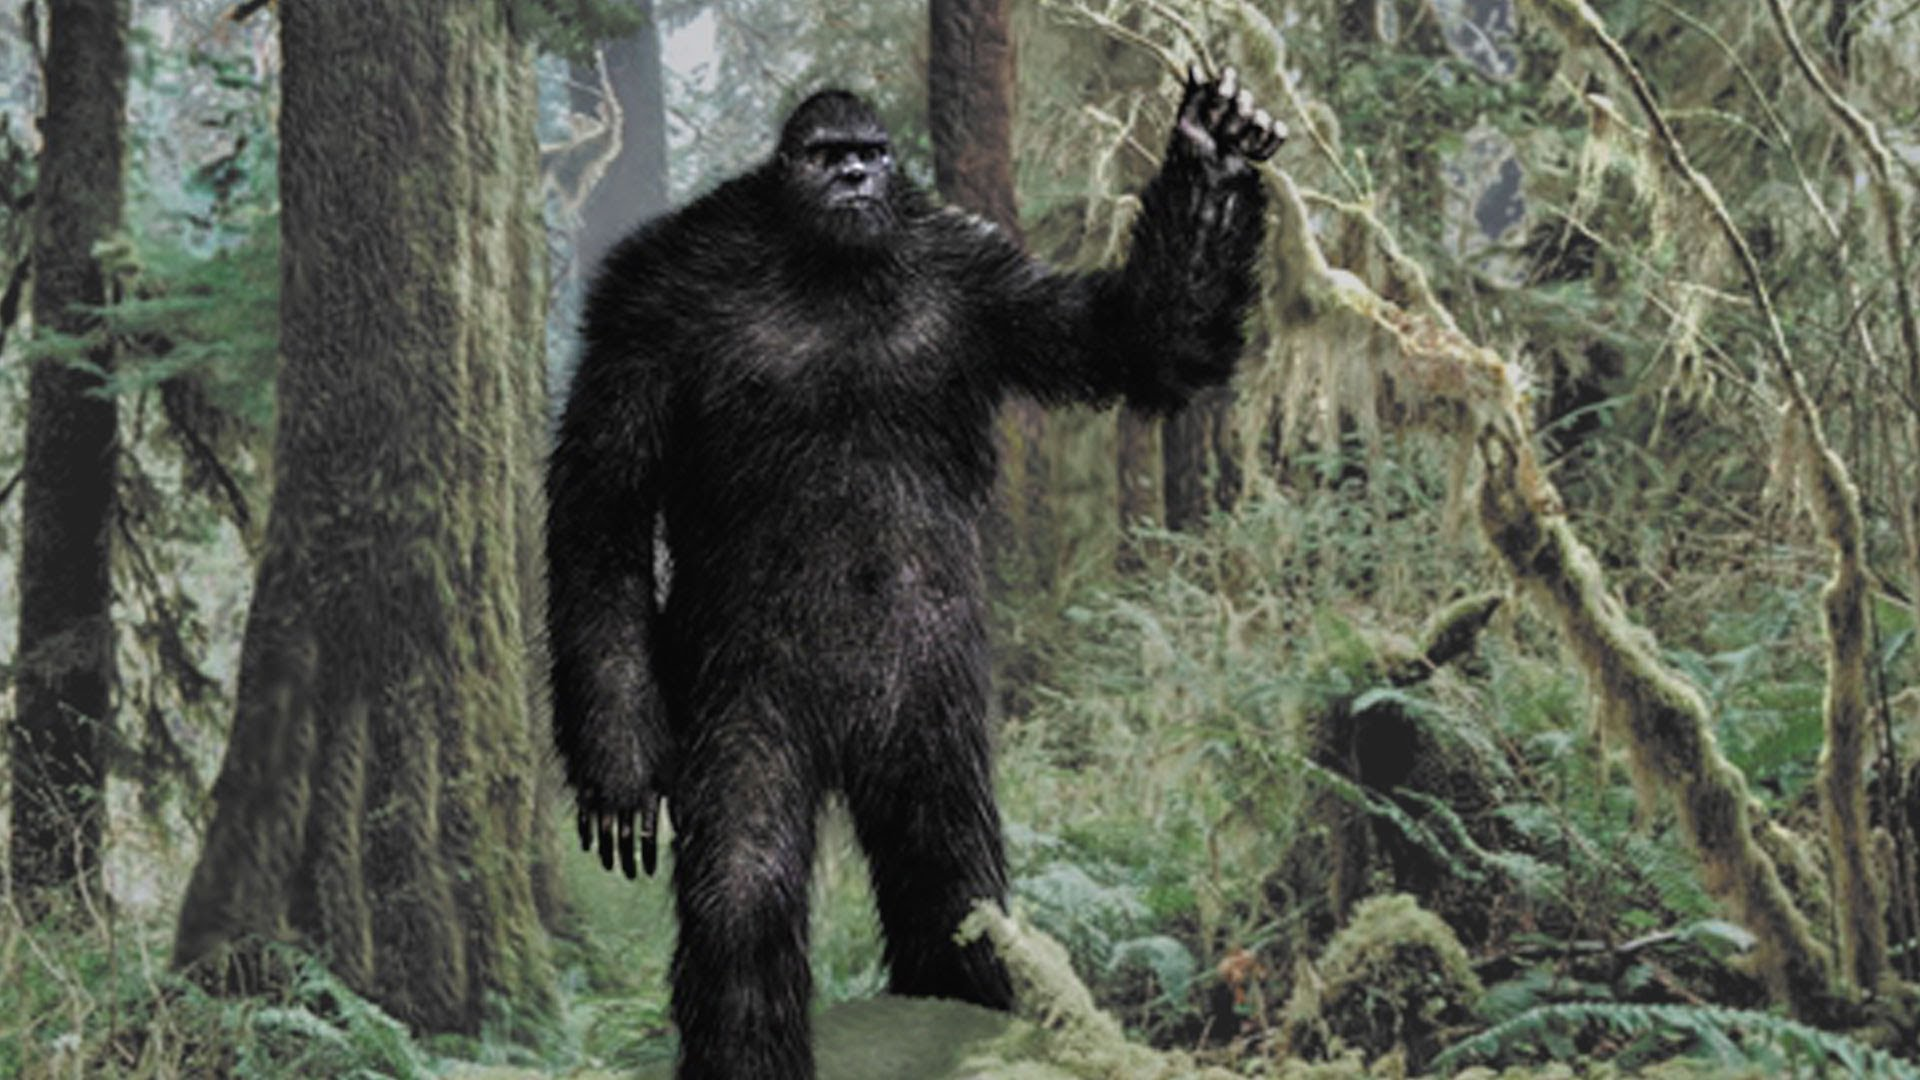 Unit 158 Woman Sees \'Bigfoot\', Sues California for Not Believing Her